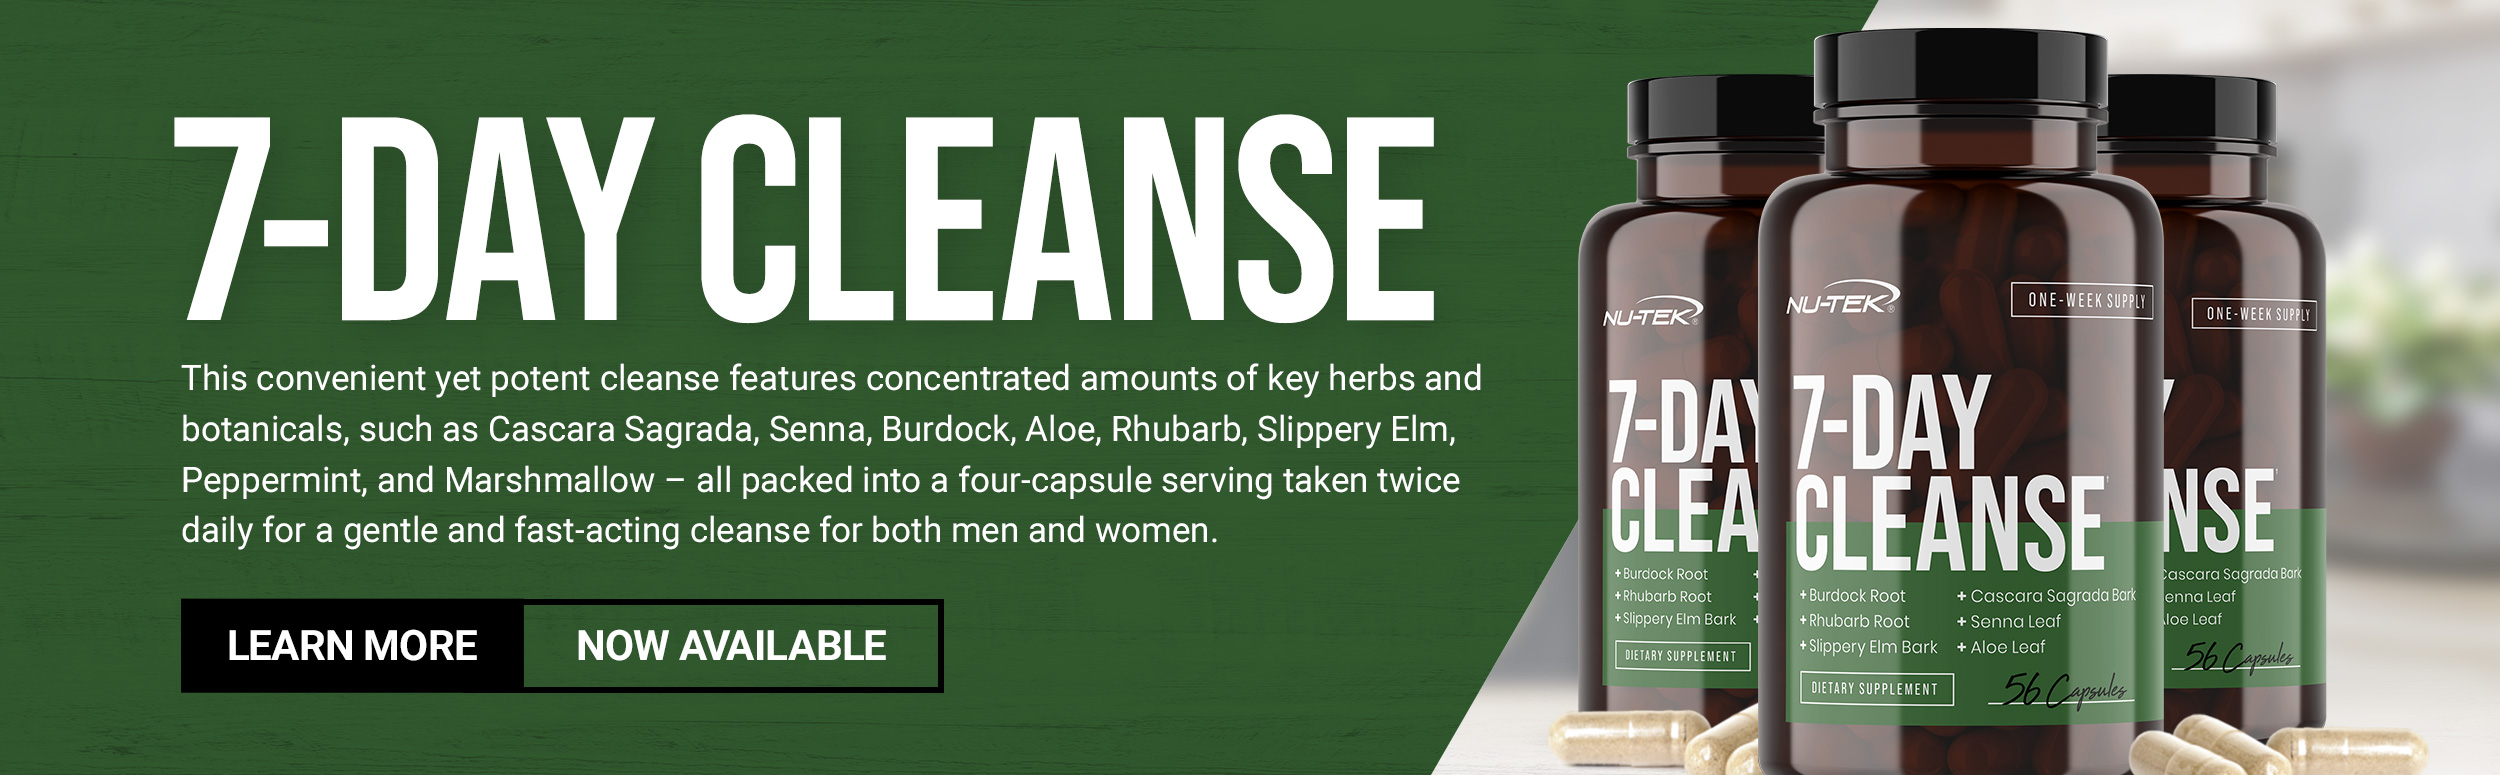 Nu-Tek 7 Day Cleanse Now Available - Learn More